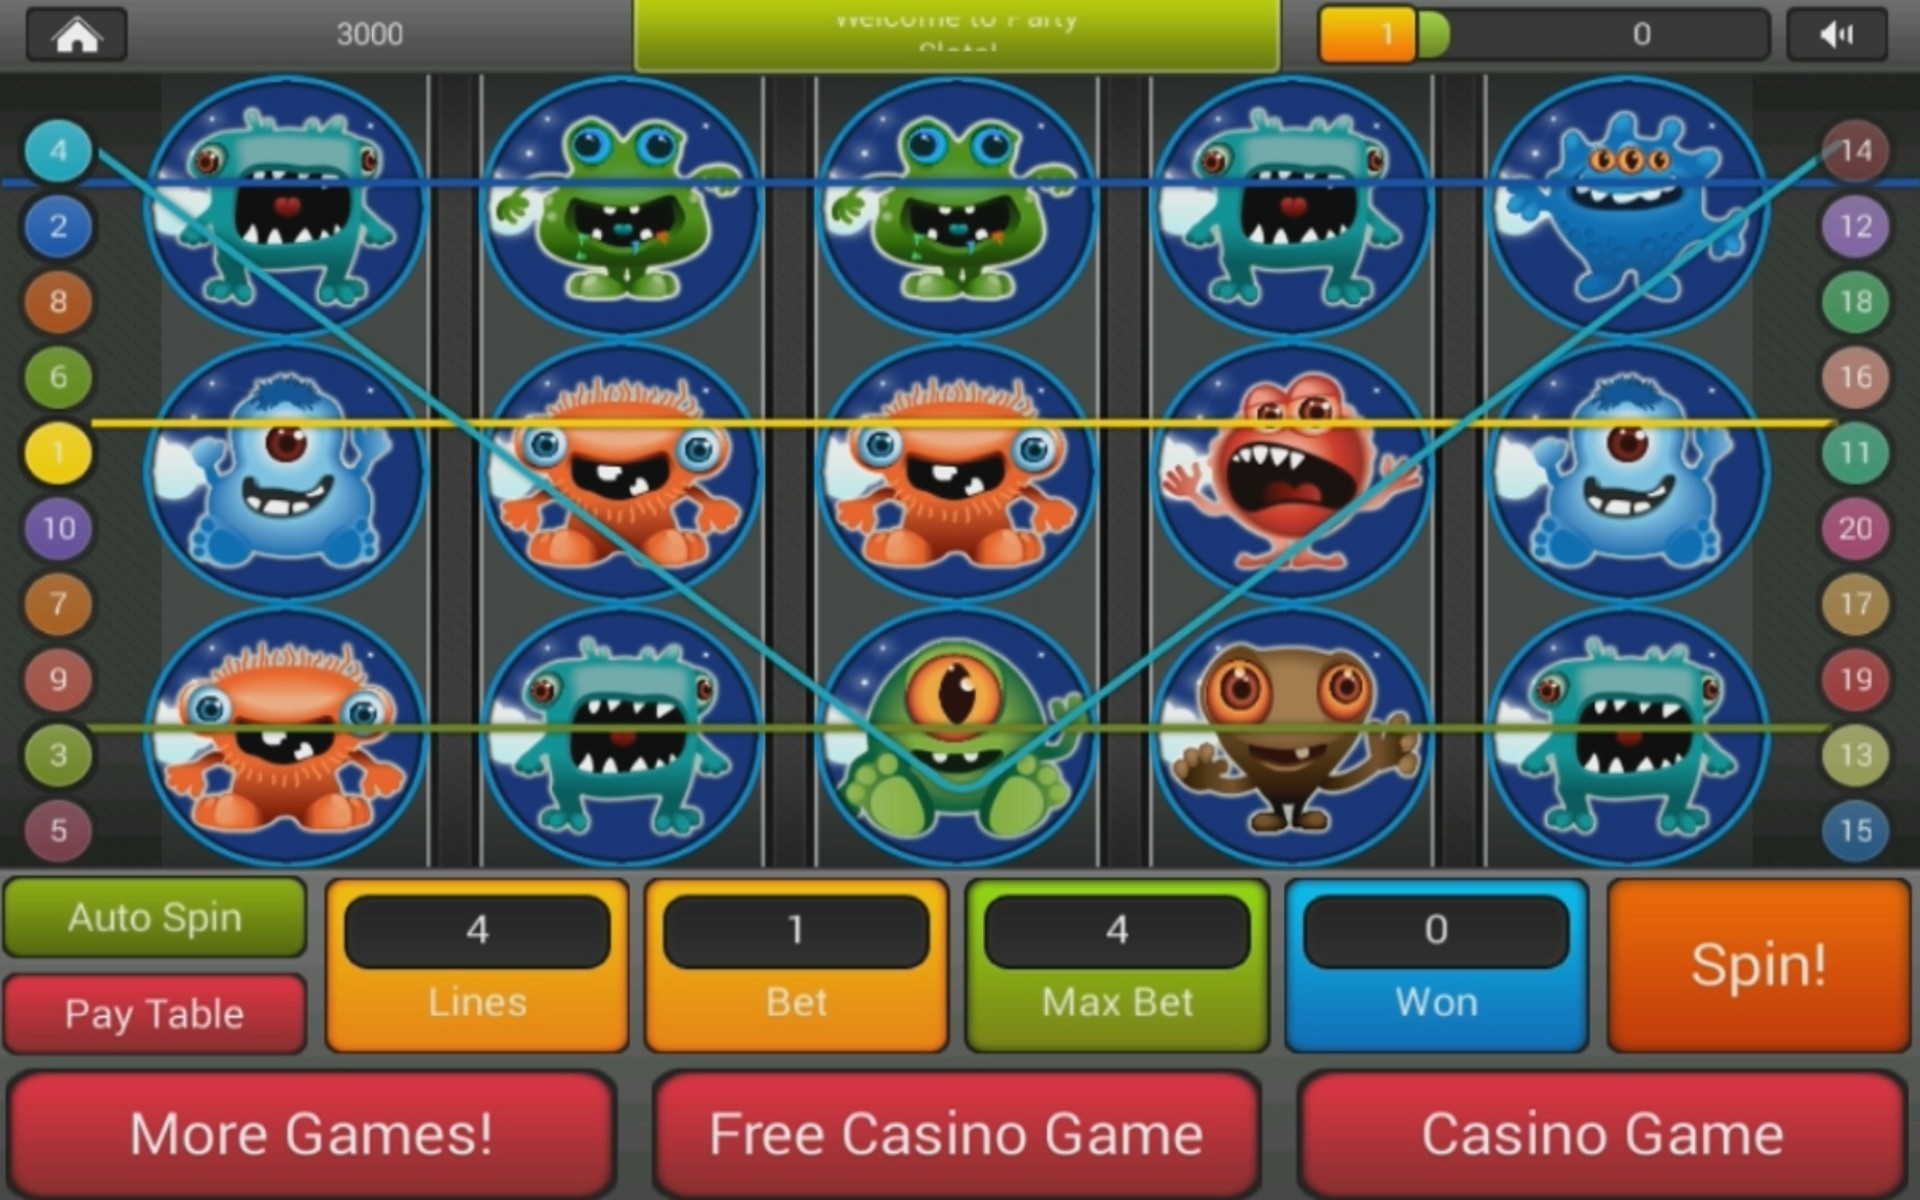 Monte Carlo Racing Slot - Try this Free Demo Version